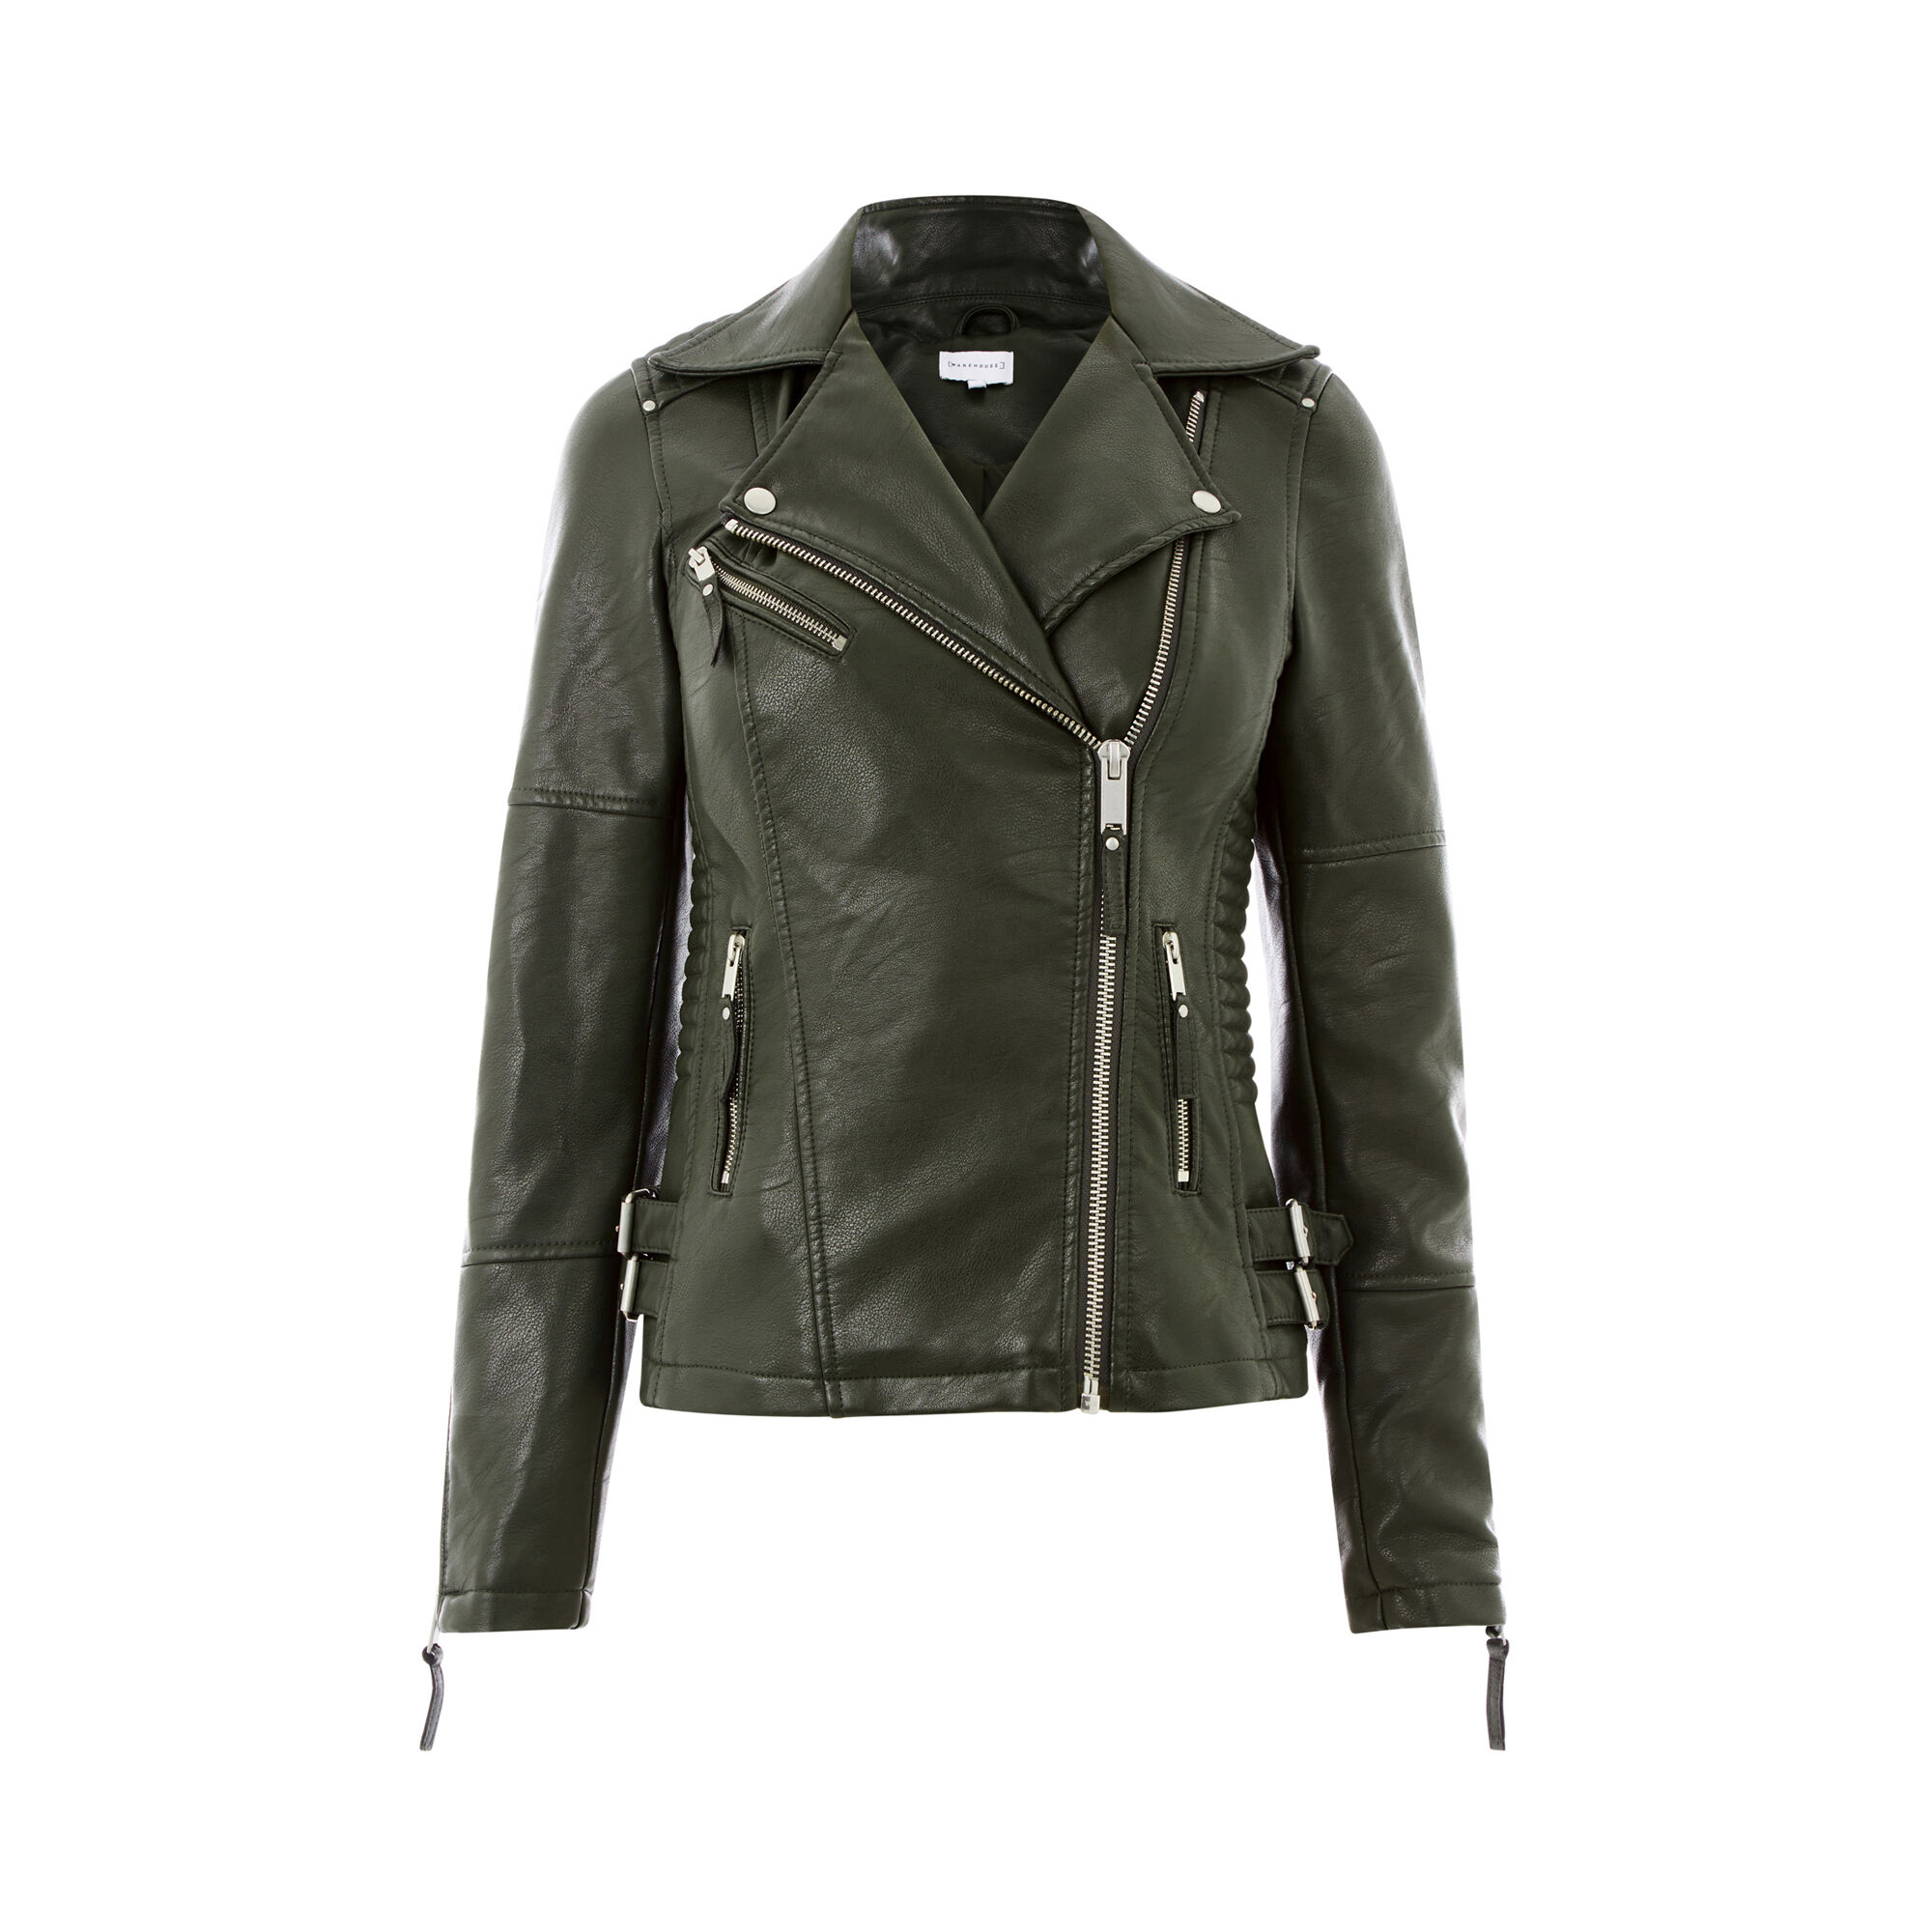 Faux leather jacket meaning